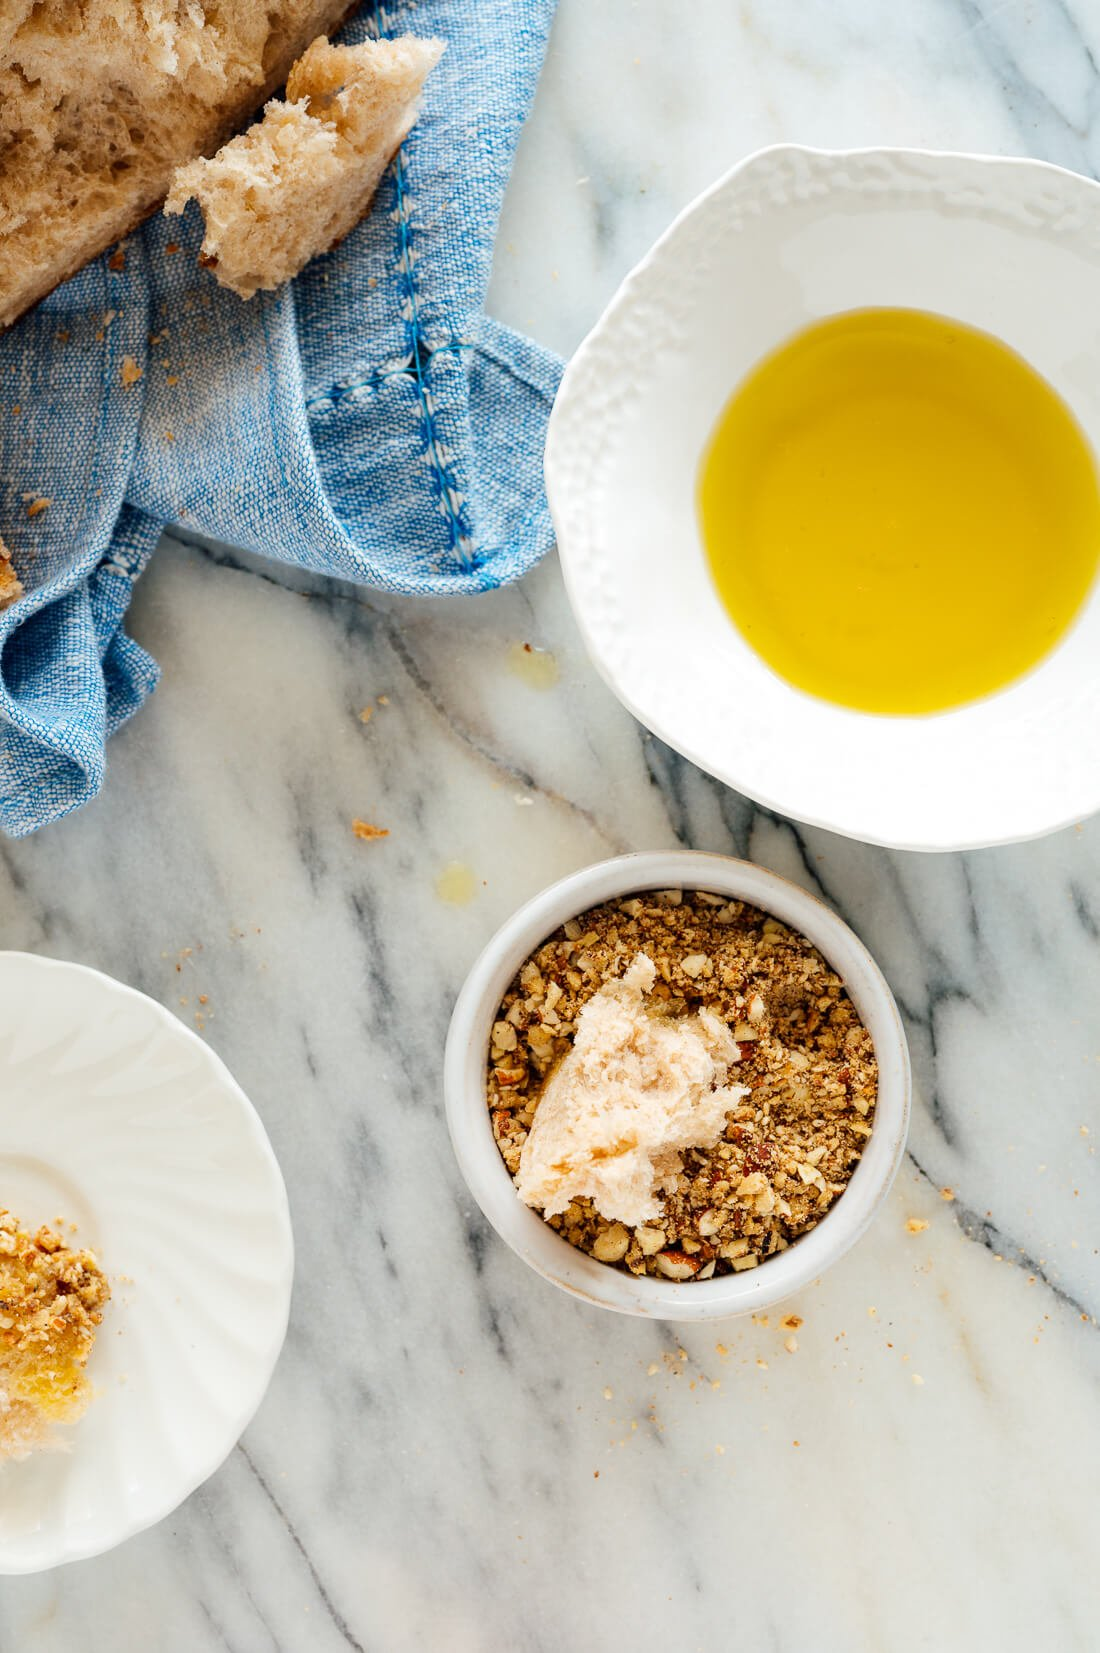 dukkah with olive oil and bread